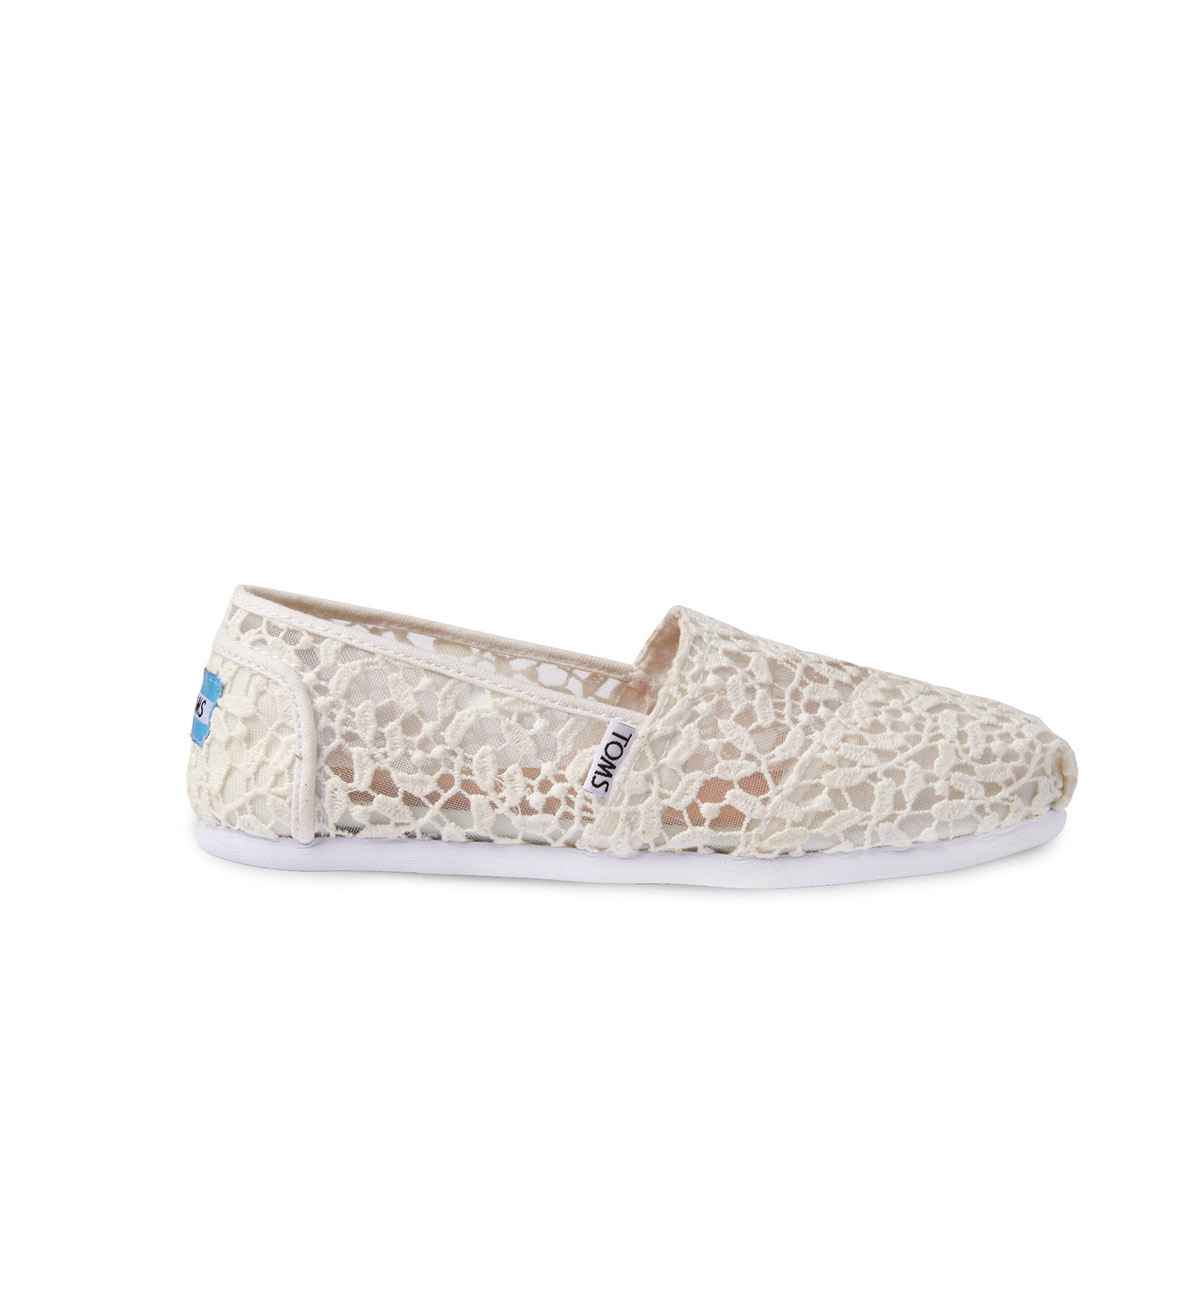 Tom's white lace wedding sneakers